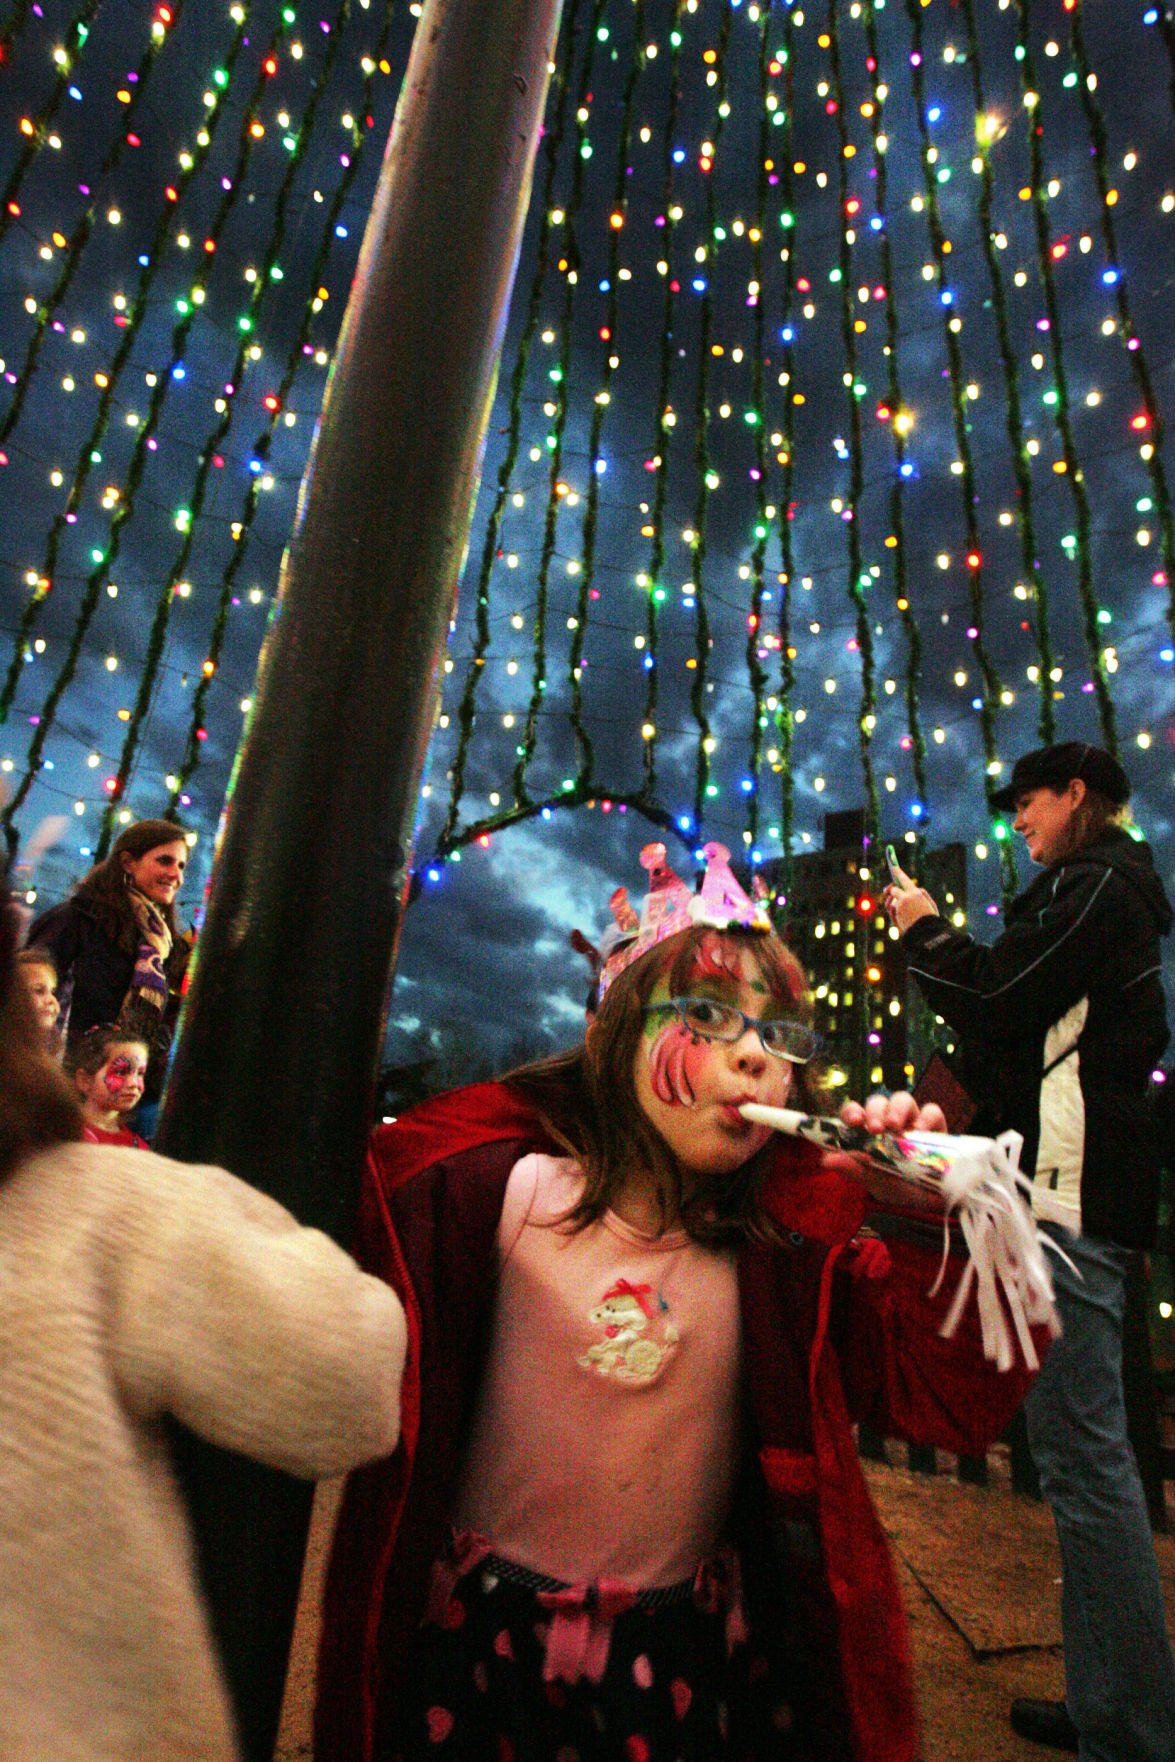 City to hold family-friendly New Year's Eve party in Marion Square